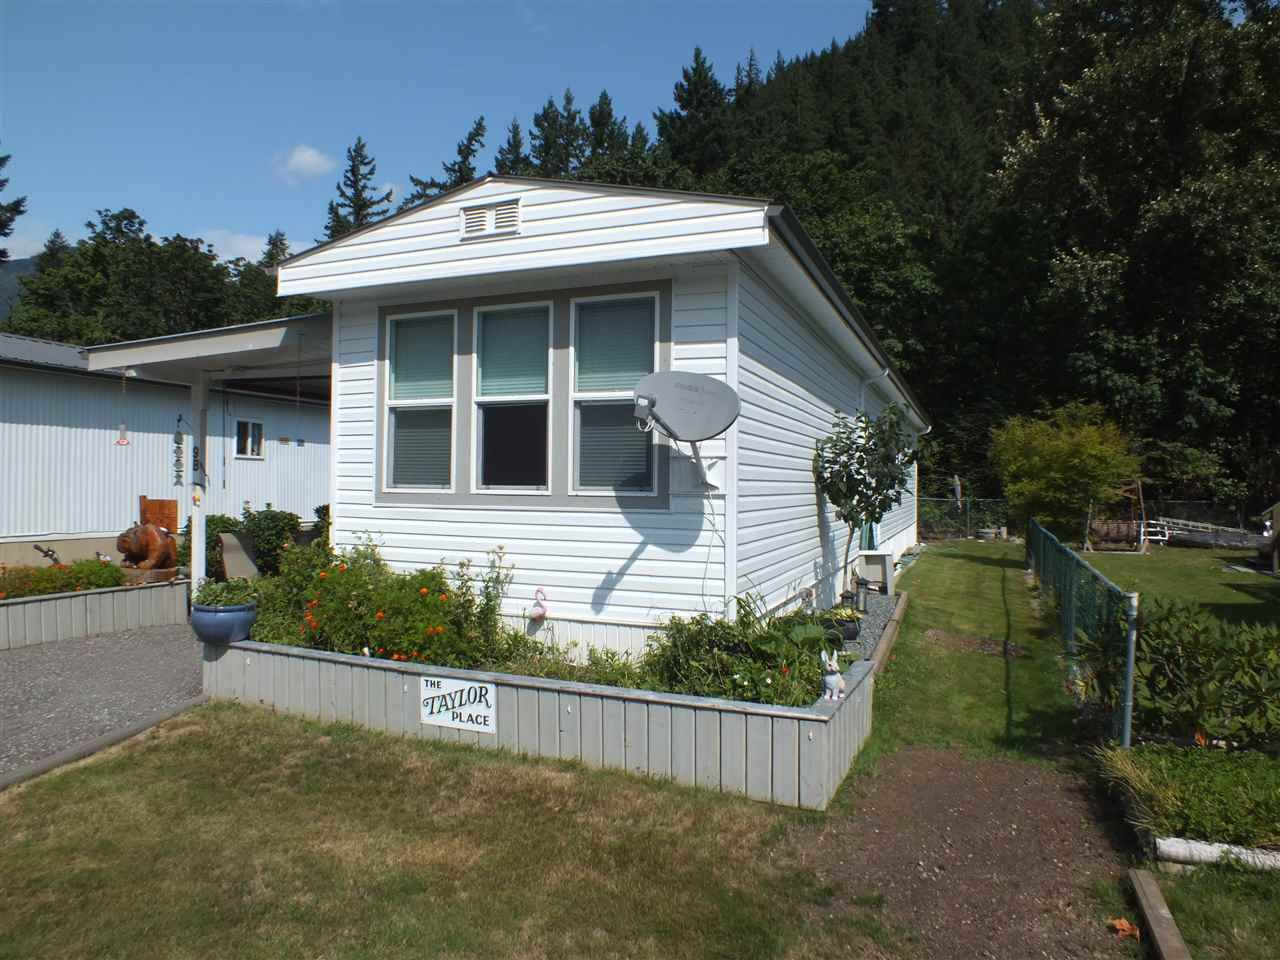 Main Photo: 9B 65367 KAWKAWA LAKE Road in Hope: Hope Kawkawa Lake Manufactured Home for sale : MLS®# R2394967